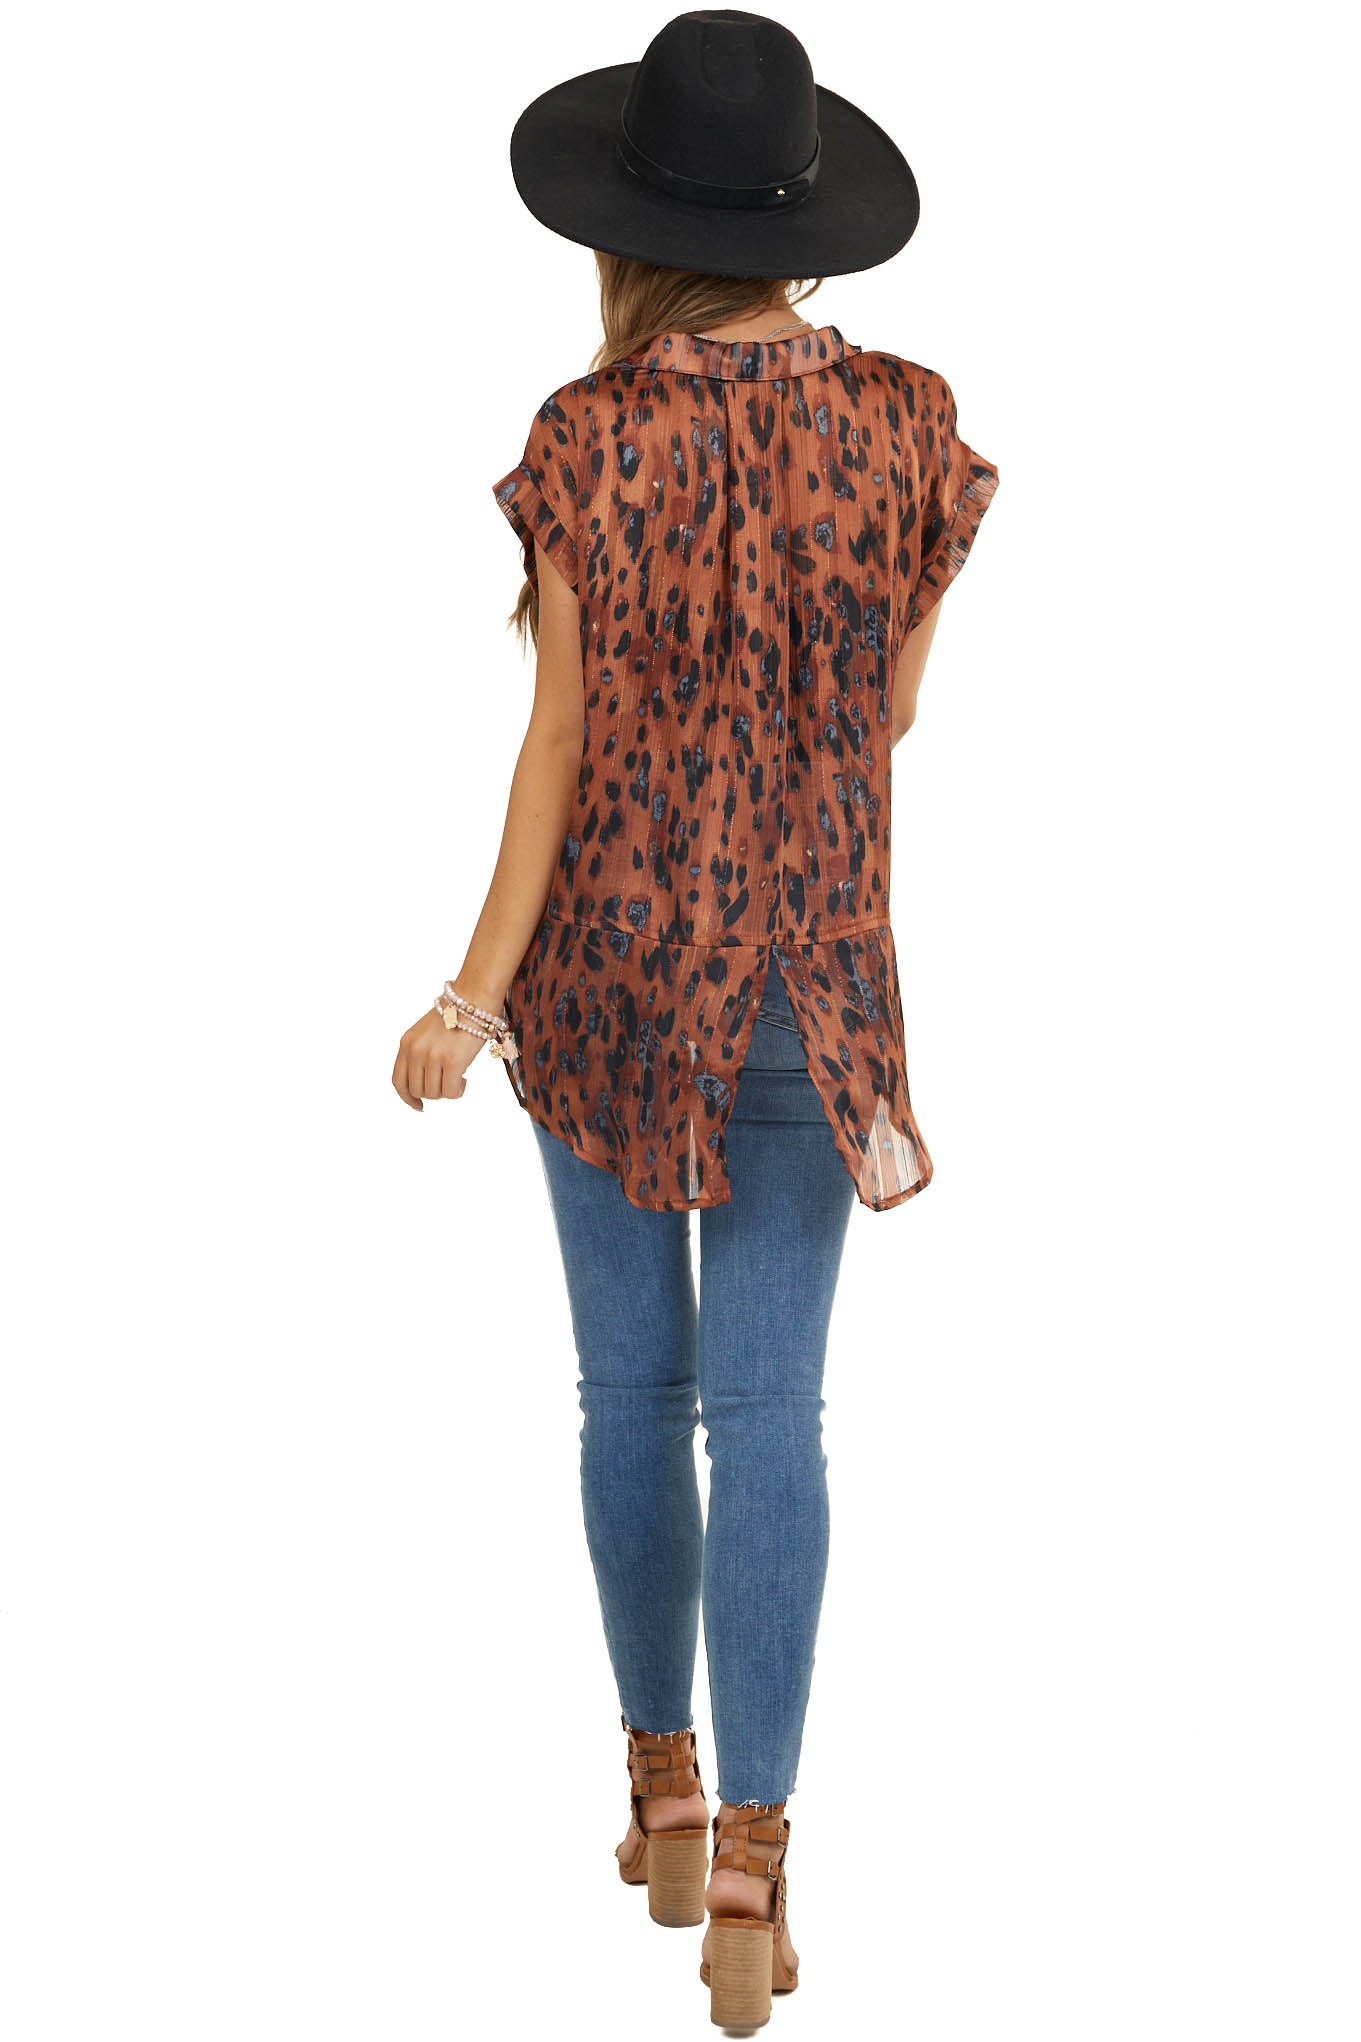 Burnt Orange Cheetah Print Button Up Top with Short Sleeves